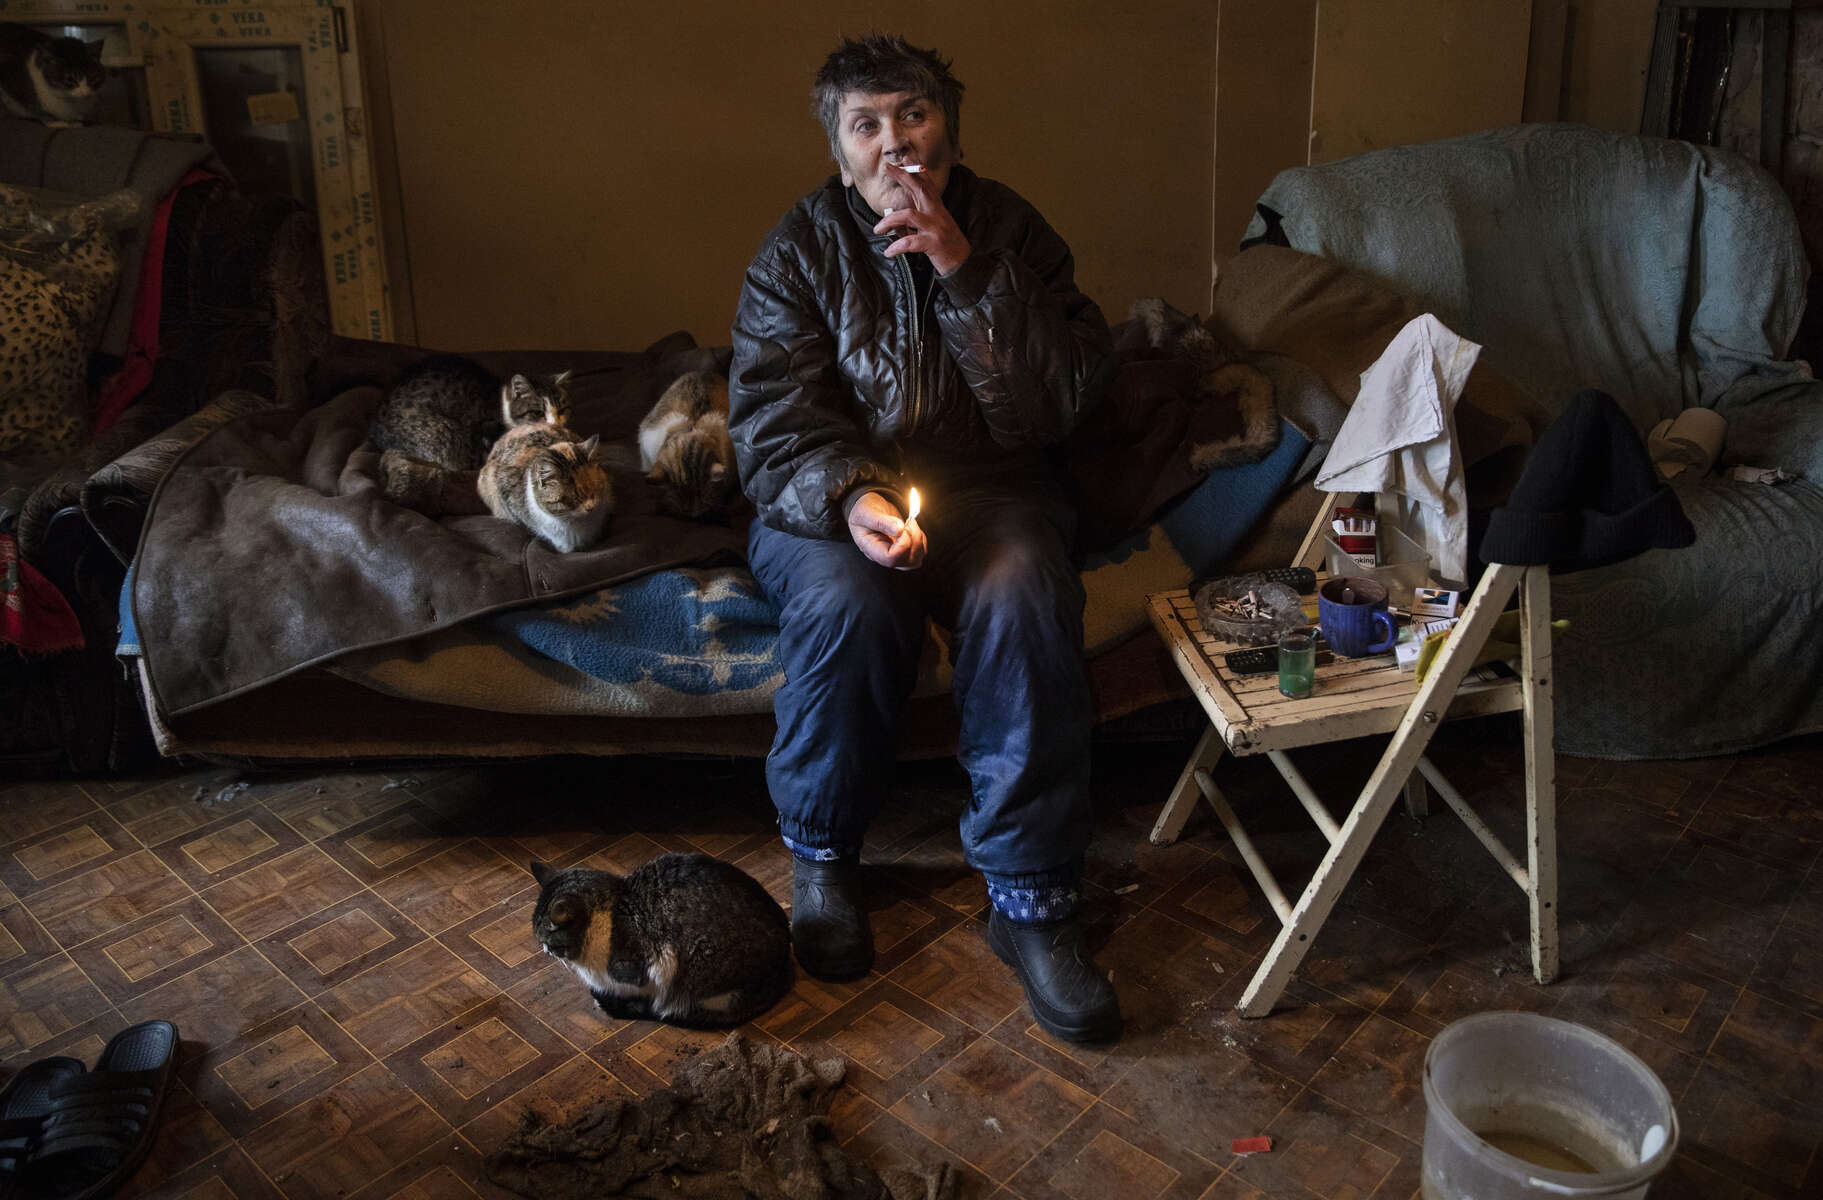 Avdiivika: Ludmyla Vasilevna, age 61, lives alone with her cats and a few dogs in a war torn village very close to the contact line where most have left due to the dangers. Her son is in the DPR military - militia. Her house was damaged over the years, refuses to leave as she has nowhere else to go.